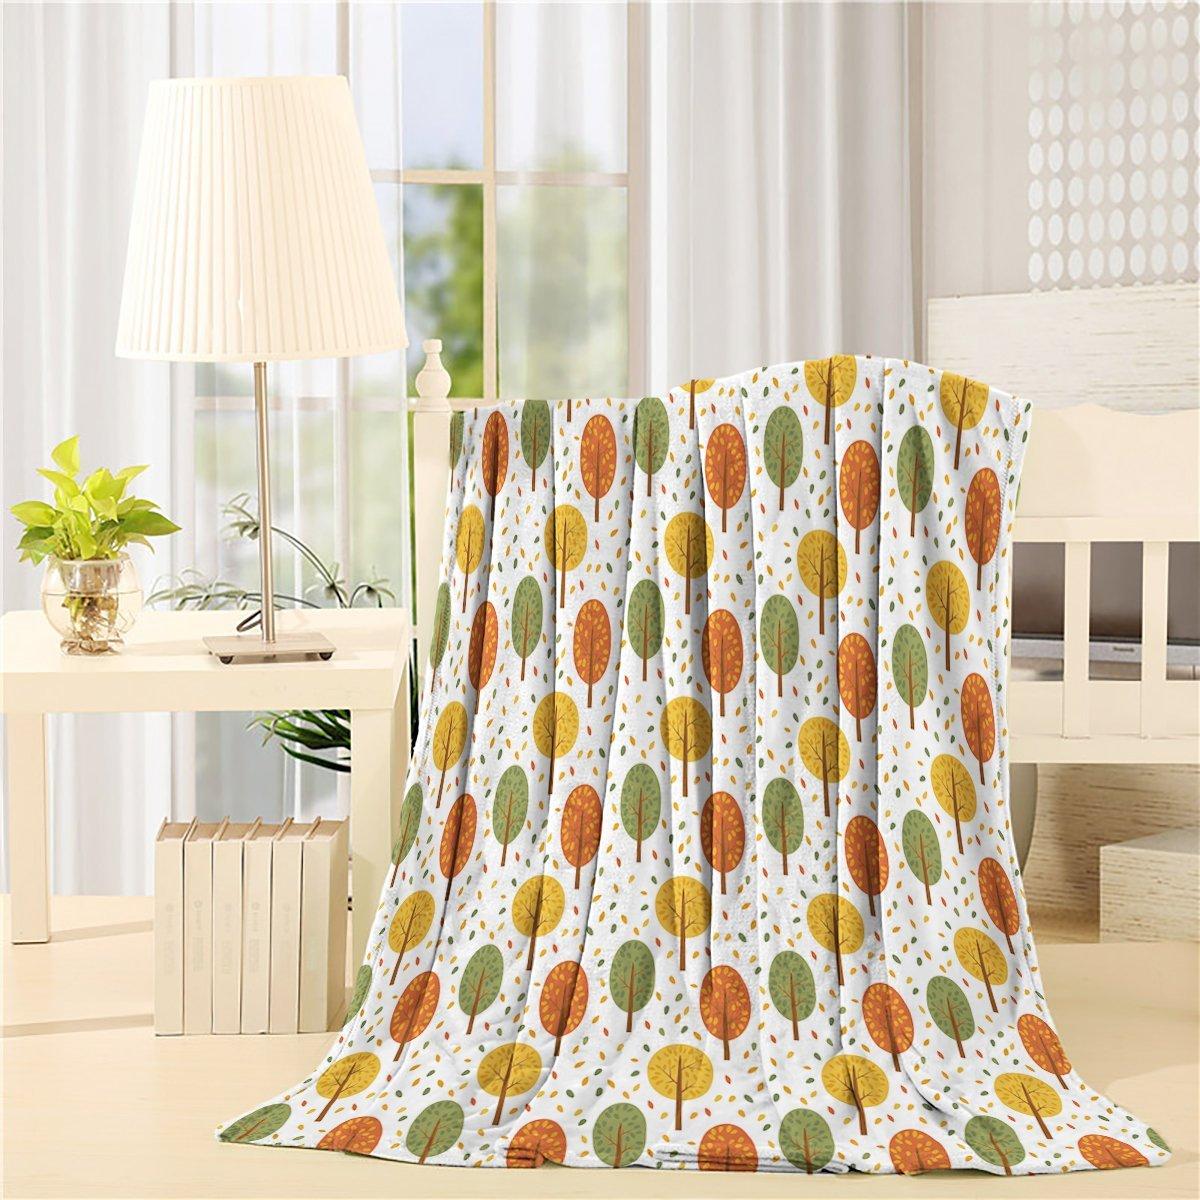 Modern Home Yellow Orange Green Trees Art Prints Fleece Blanket Sheet Throw Bedding Blanket